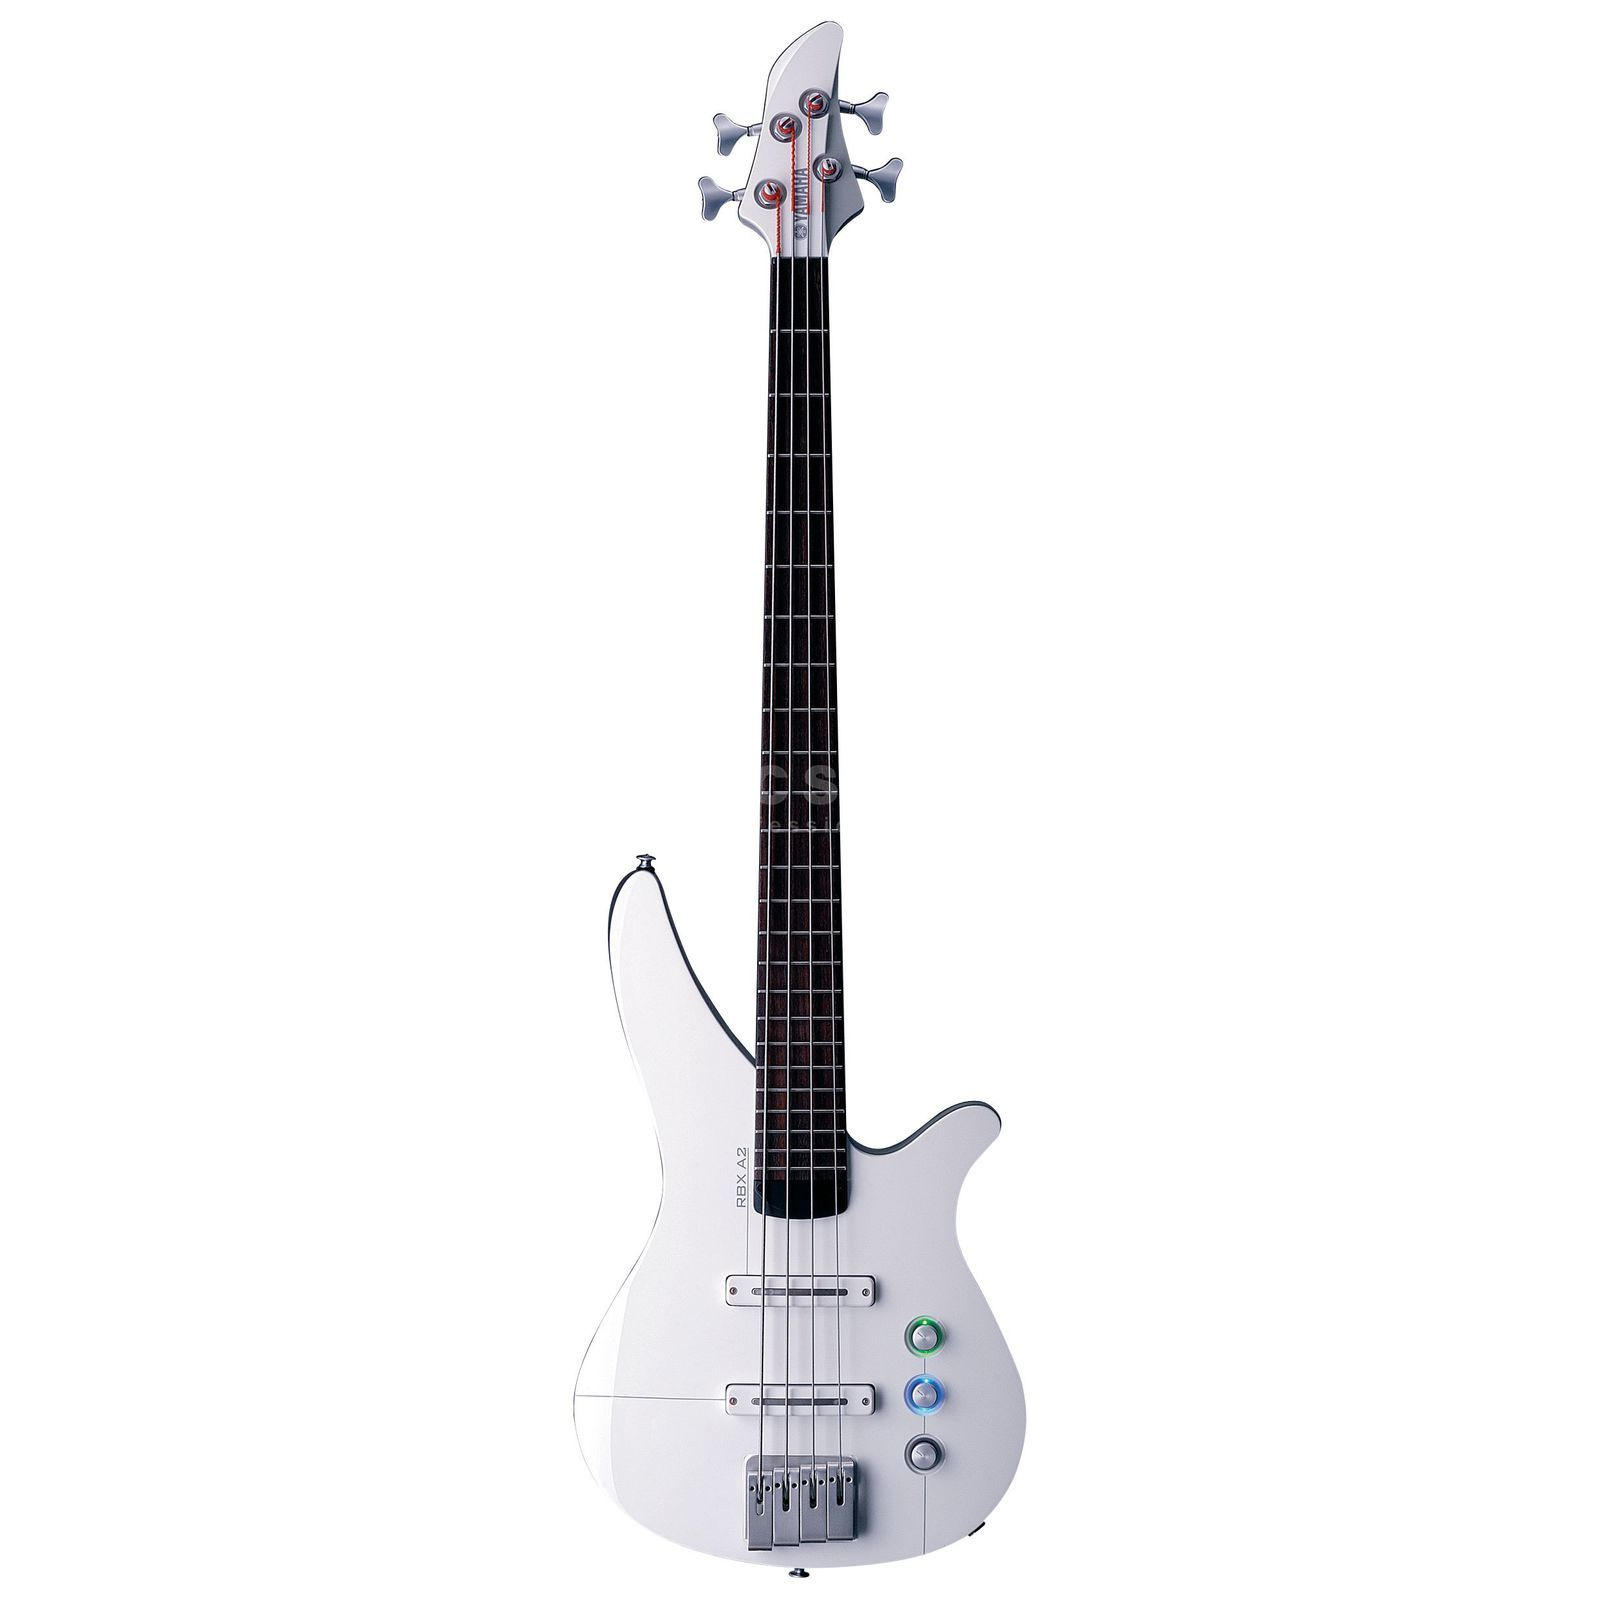 Yamaha RBX 4 A2 White Aircraft Grey  Imagen del producto